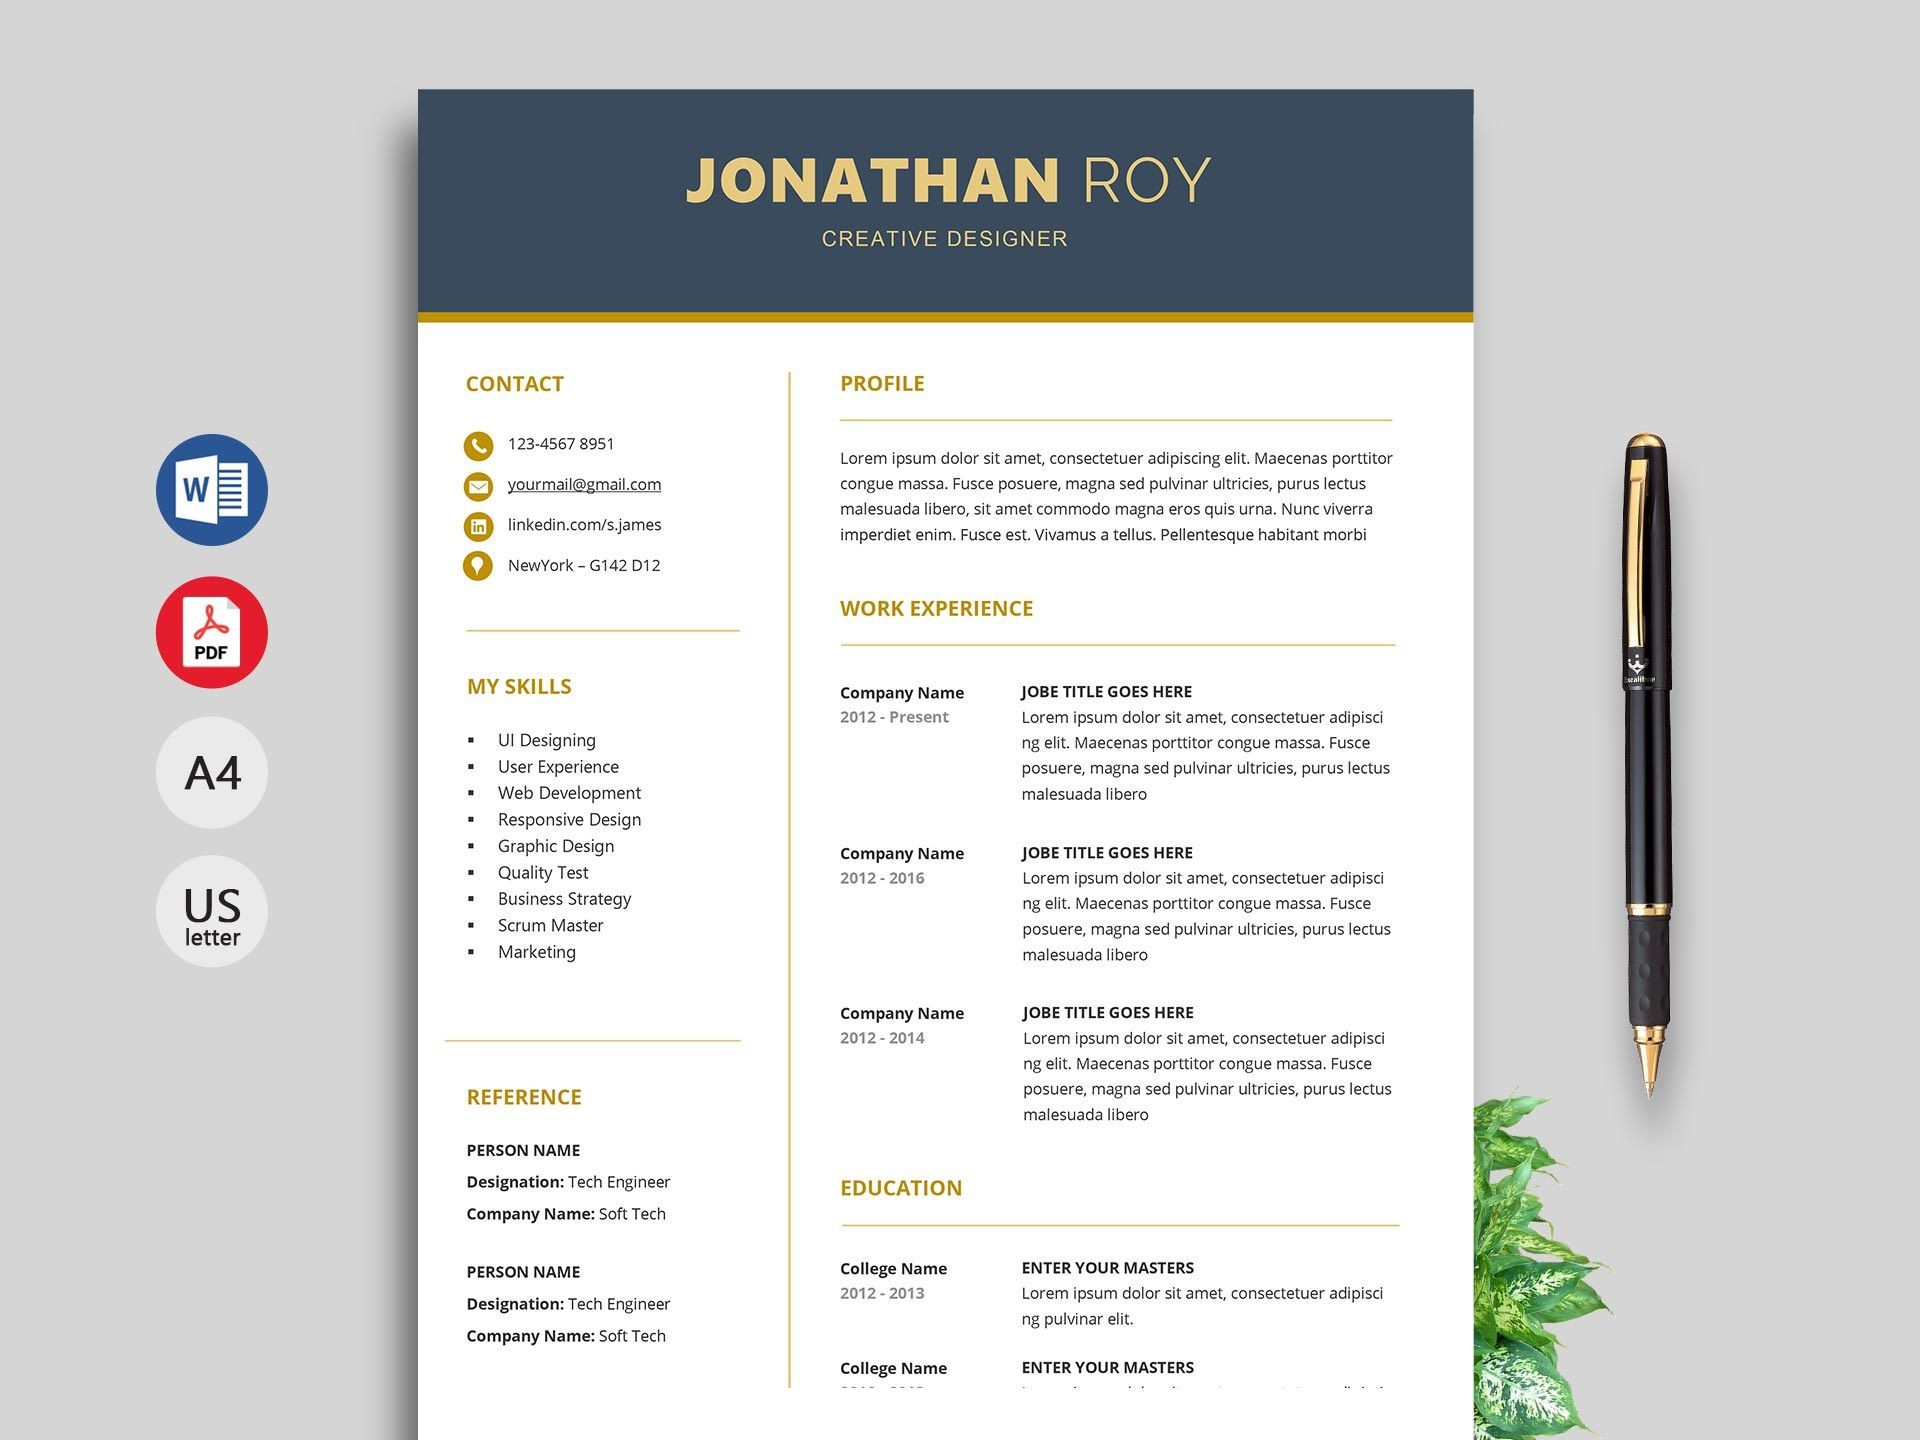 006 Unique Resume Template Download Word Concept  Cv Free 2018 2007 Document For Fresher1920